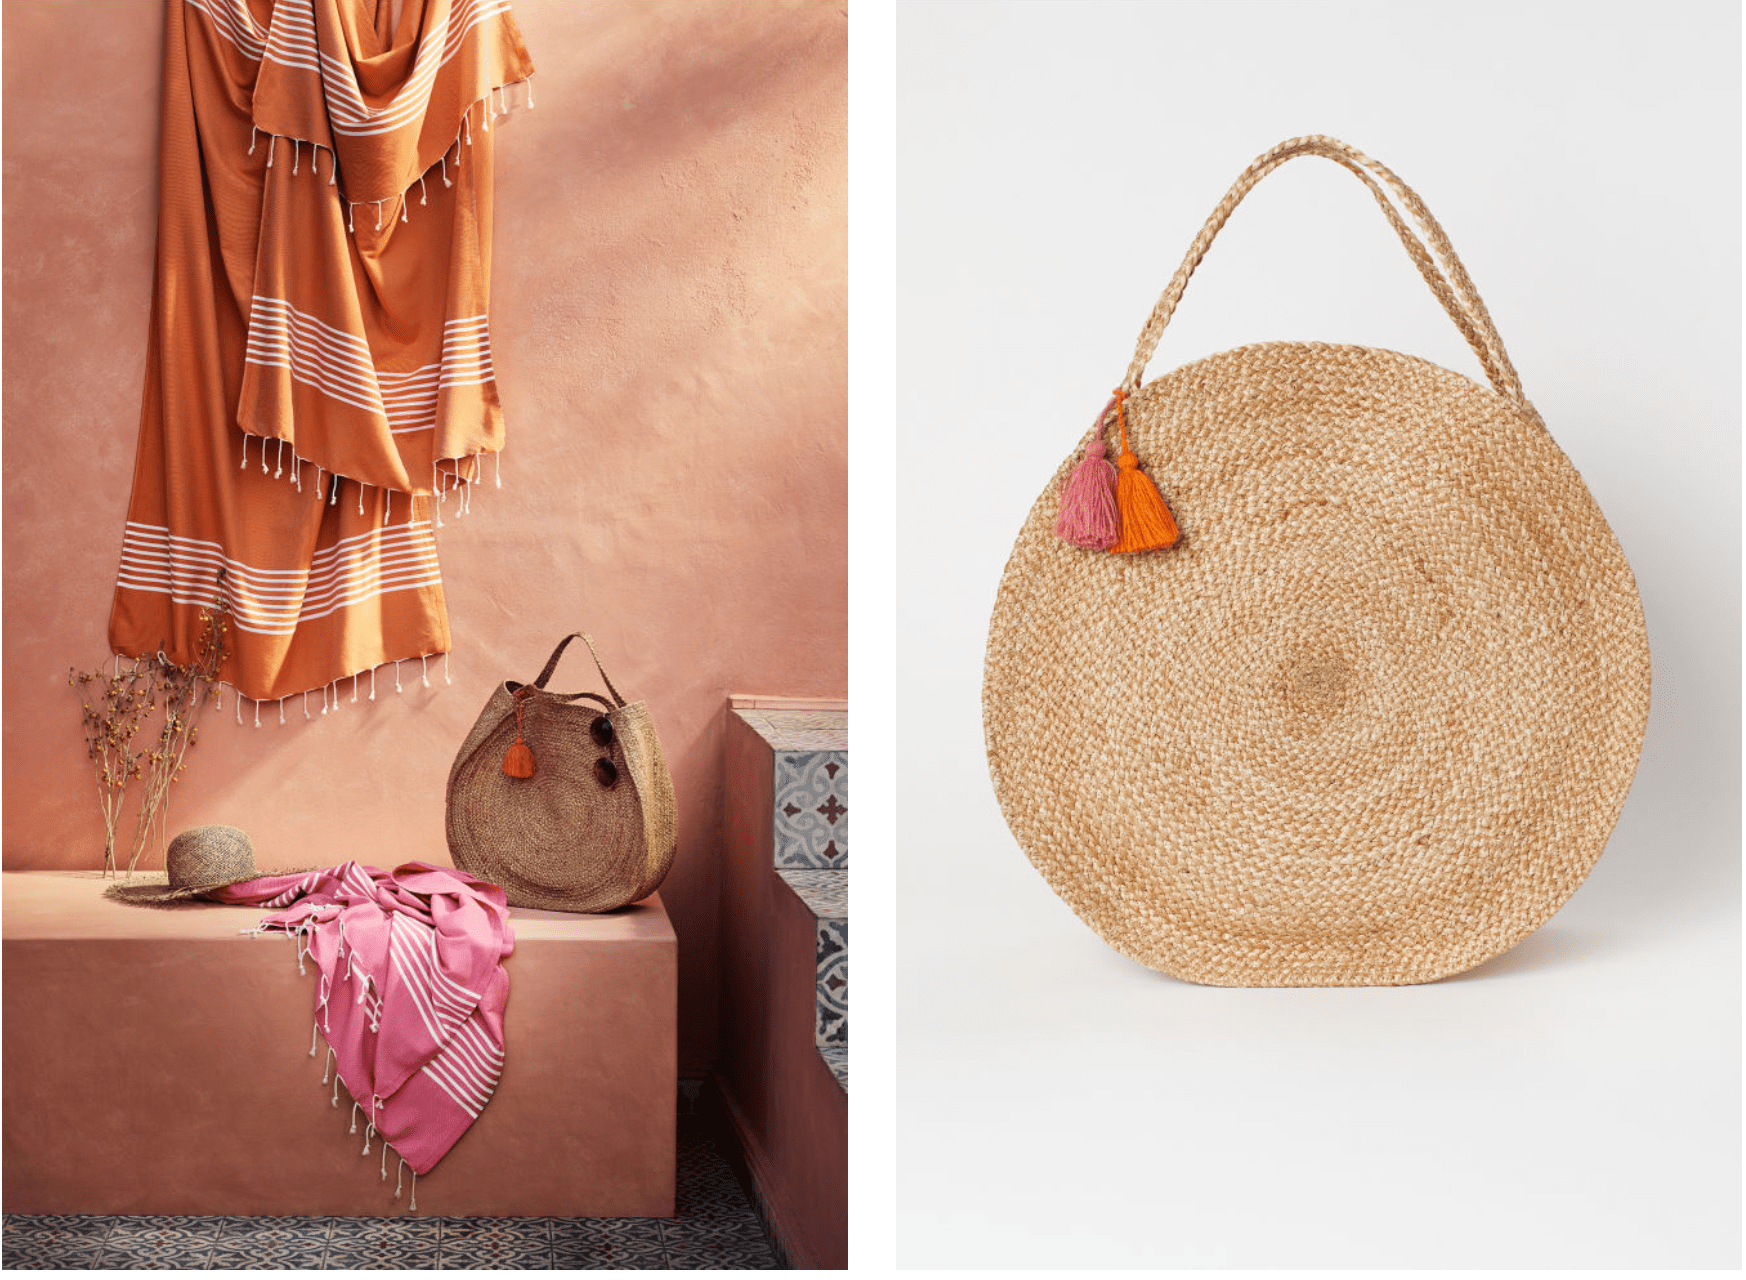 oversized jute bag | Mum Friendly accessories for Spring | The Halcyon Years